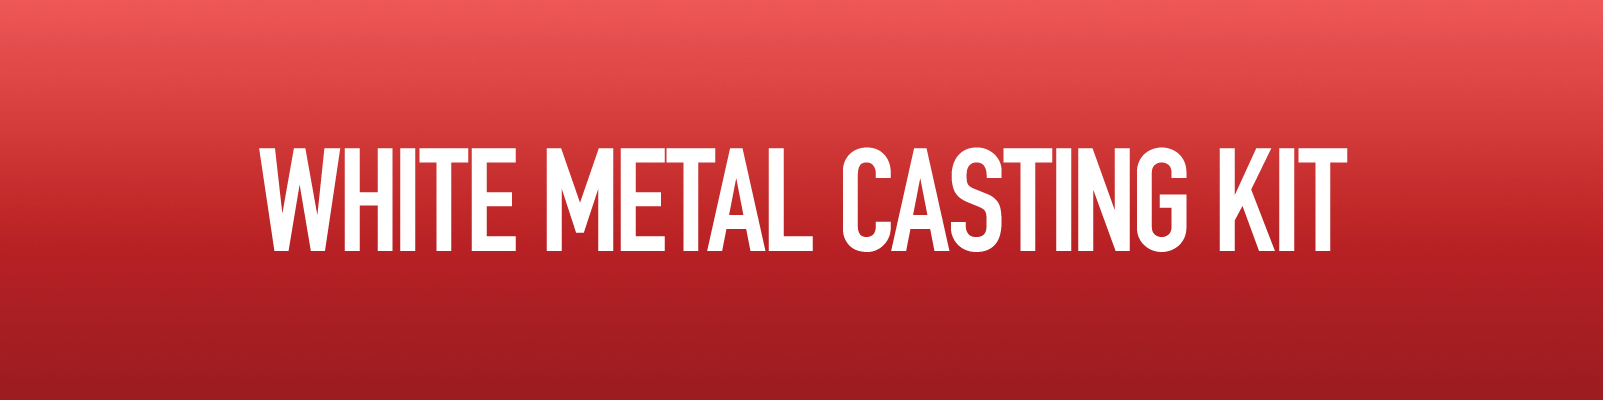 White Metal Casting Kits